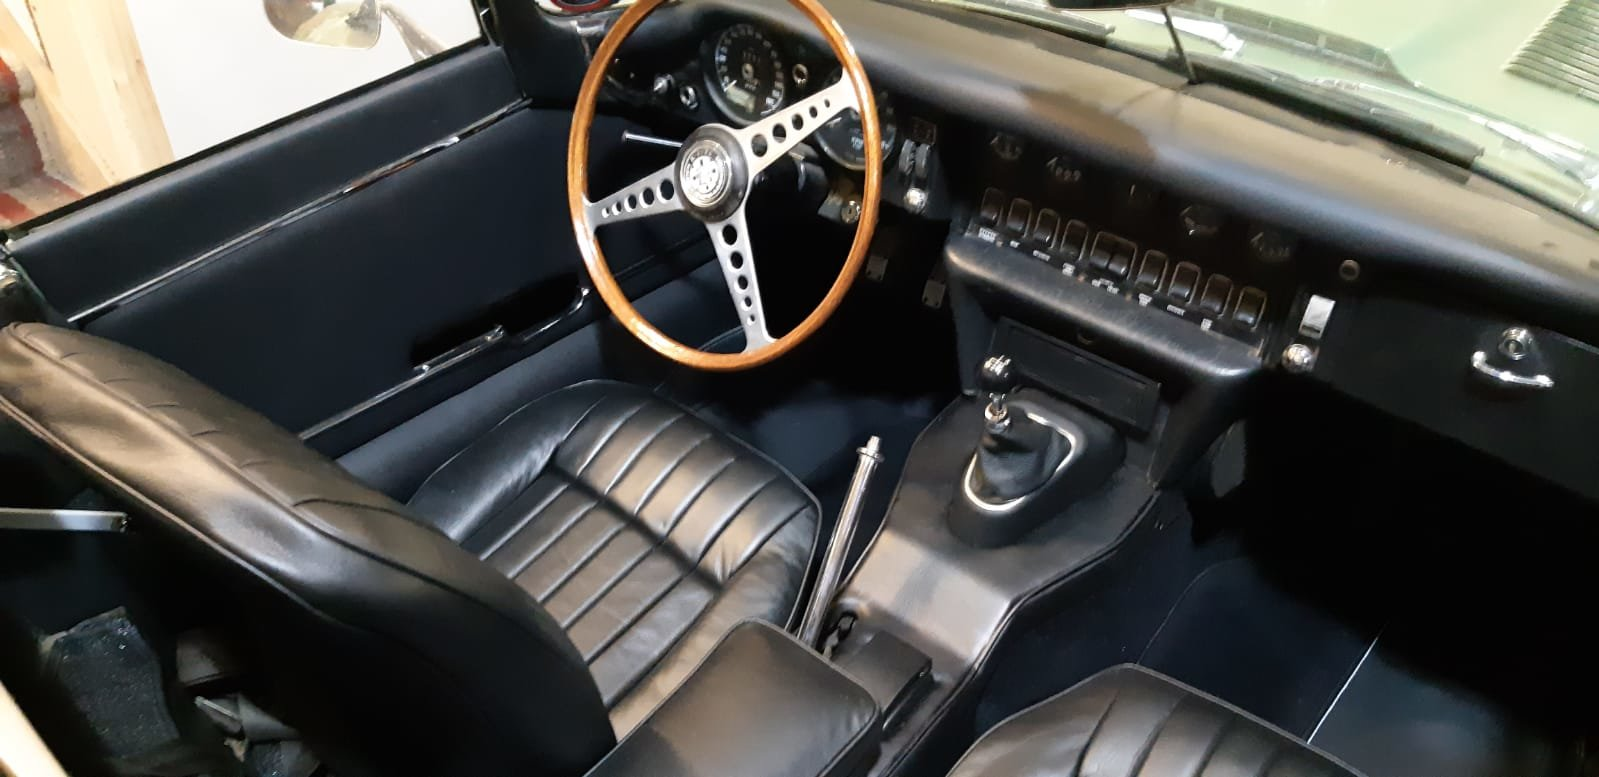 1968 Jaguar E-Type Roadster s1.5 For Sale (picture 6 of 6)